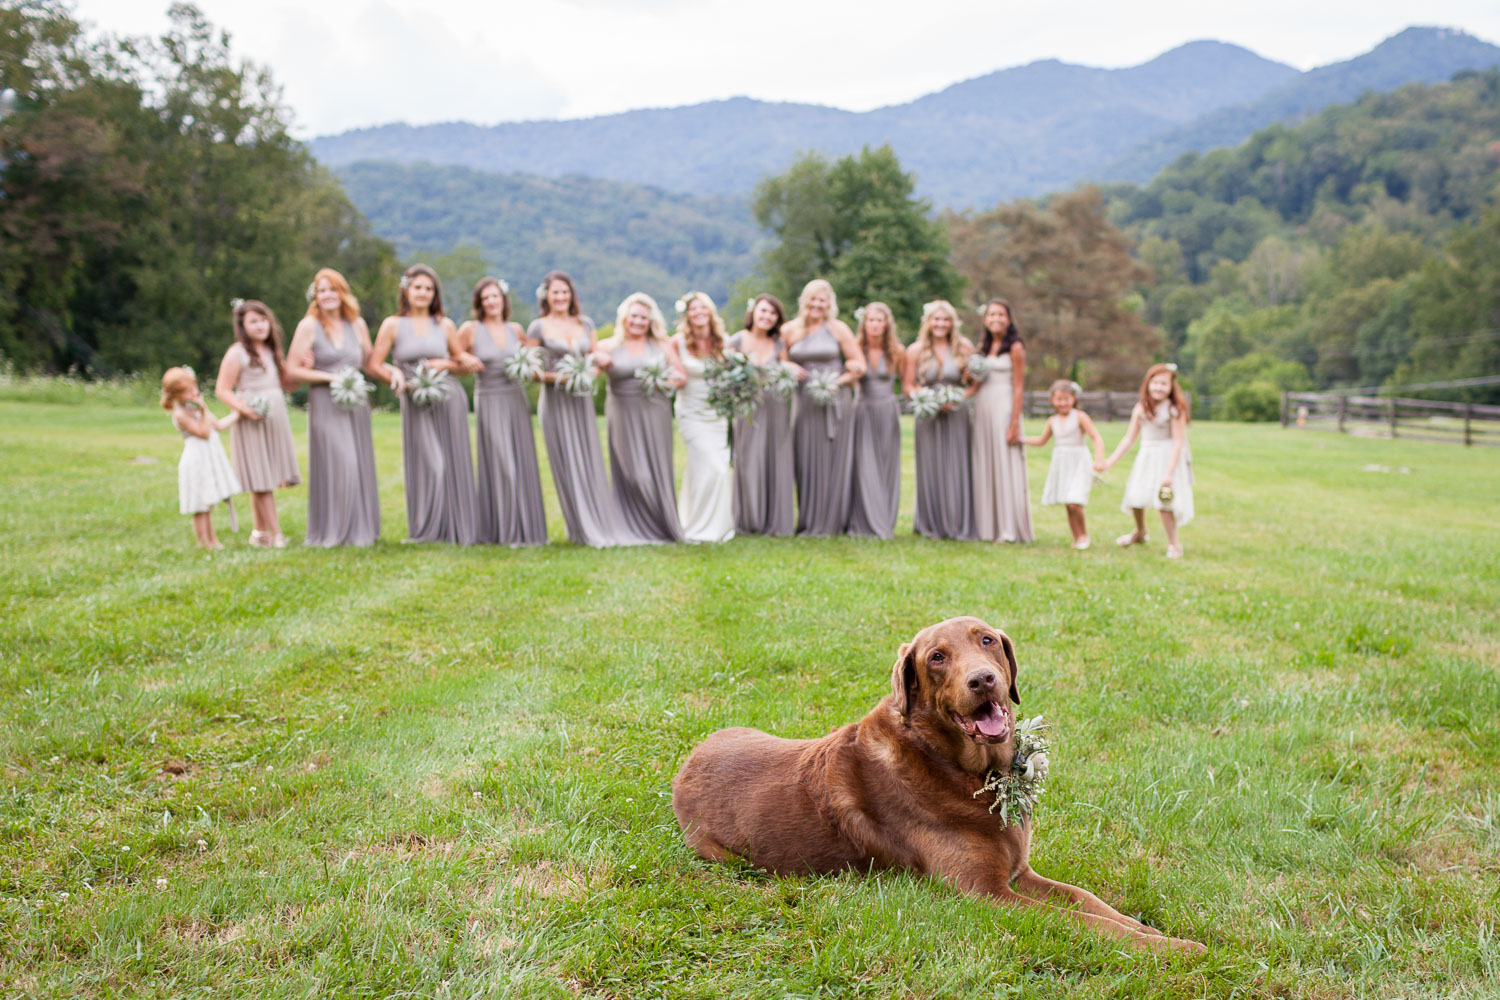 Sometimes photography on your wedding day can start to feel a bit too serious, and there's nothing a like a dog to lighten the mood a little and put a smile on your face. This started out as a shot of the bride, Caroline, and her bridesmaids walking through a meadow together at the beautiful  Fields of Blackberry Cove . Suddenly Caroline's dog, Buddy, who was also in the wedding, just decided to walk right in front of my camera and take a seat! I guess he wanted to make sure he didn't get left out of the wedding album!